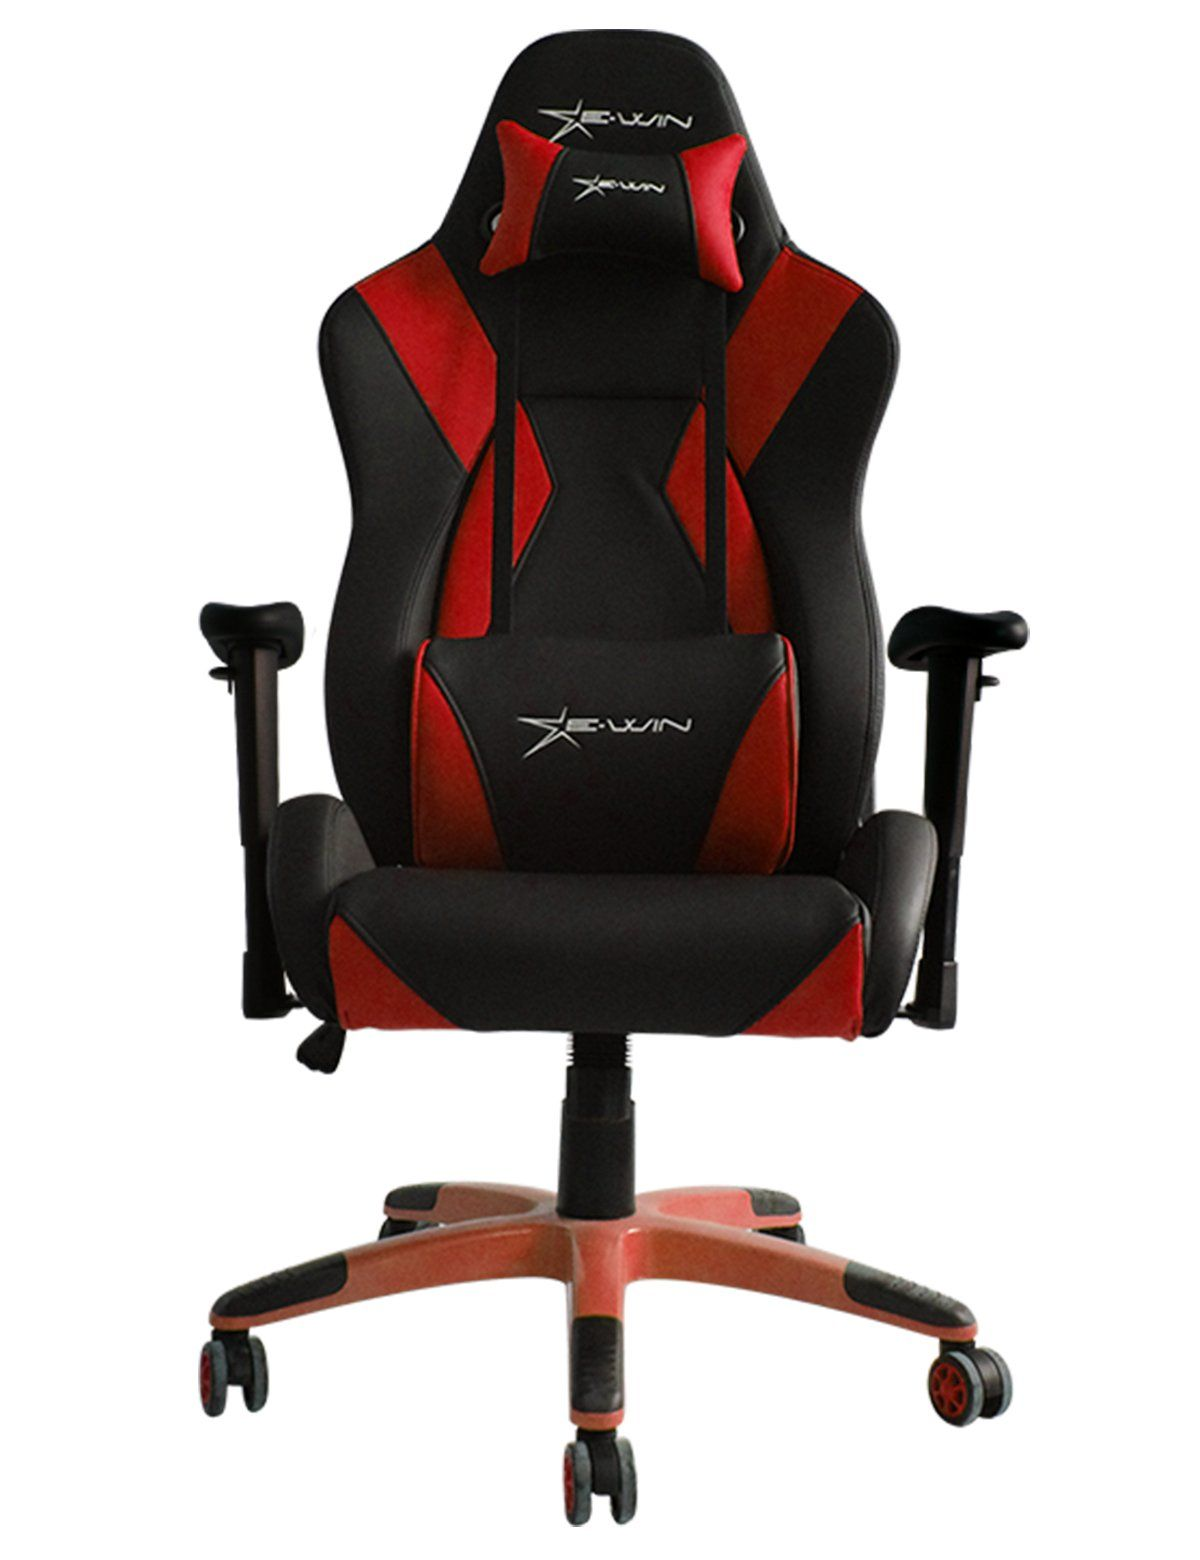 ewin chair hero series ergonomic computer highback executive gaming office chair with pillows